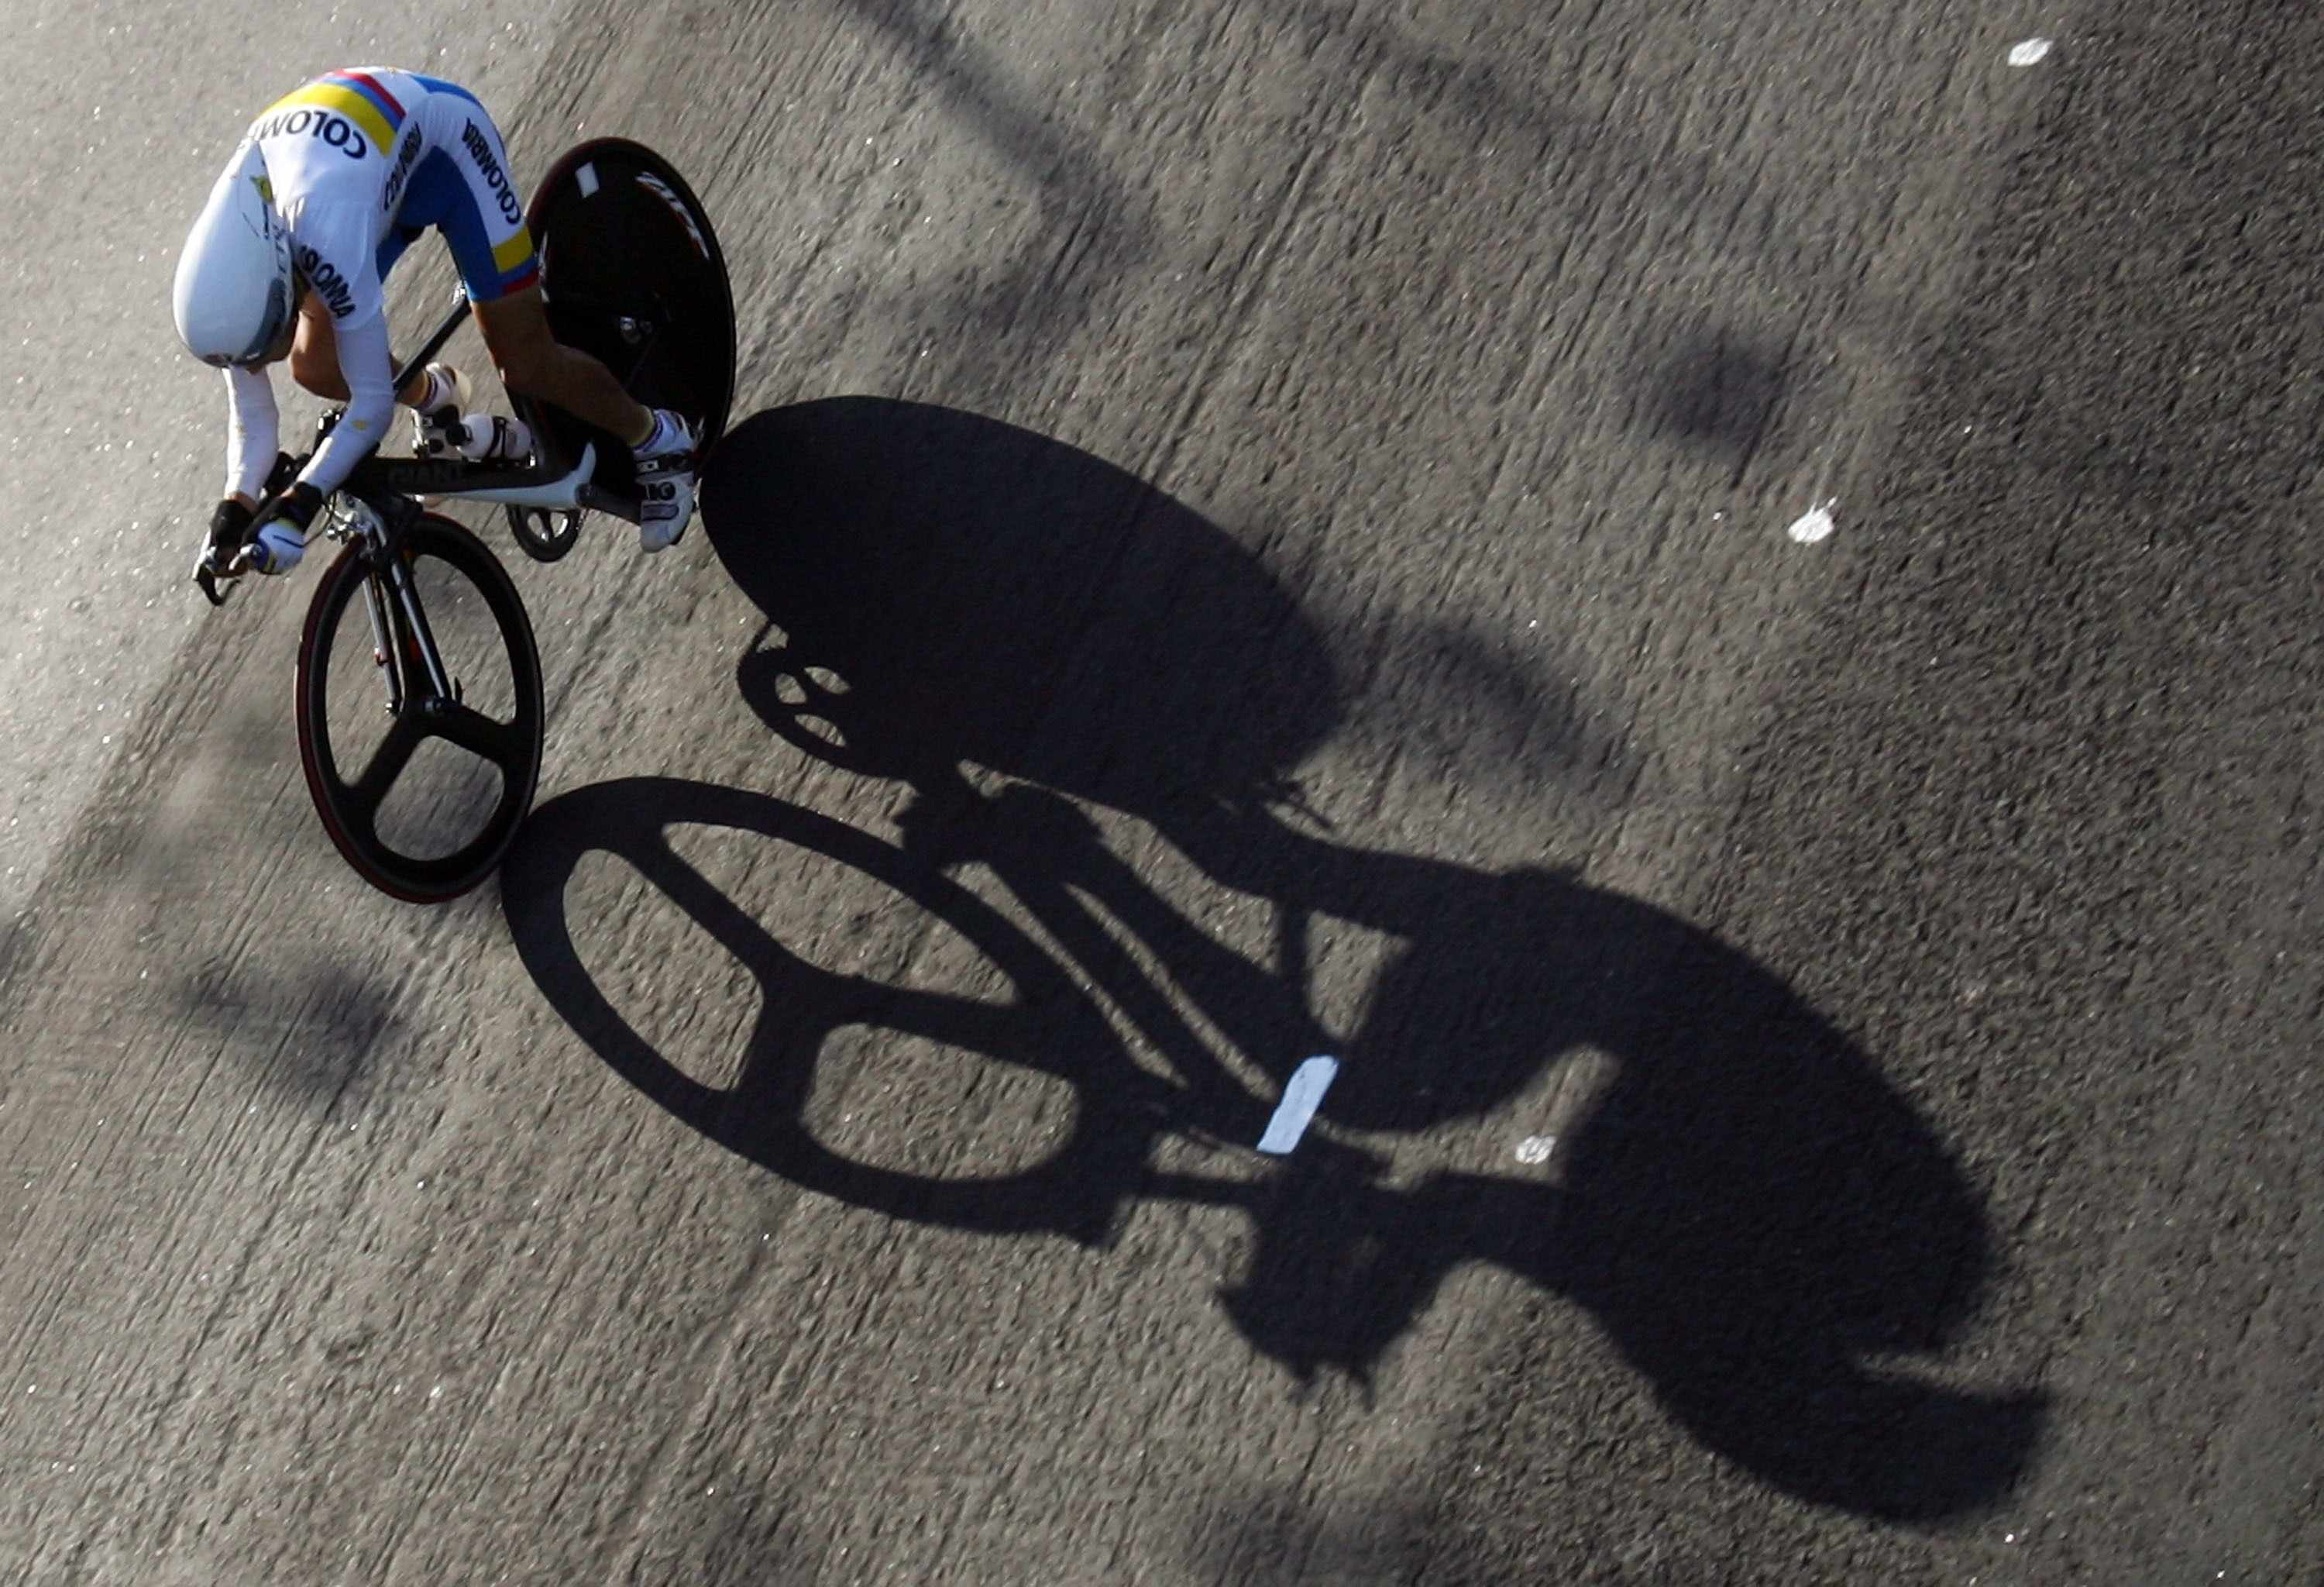 RIO DE JANEIRO, BRAZIL - JULY 15:  Santiago Botero of Columbia competes in the Men's Individual Time Trial Road Cycling Final during the 2007 Pan American Games at the Parque de Flemengo July 15, 2007 in Rio de Janeiro, Brazil.  (Photo by Jeff Gross/Getty Images)